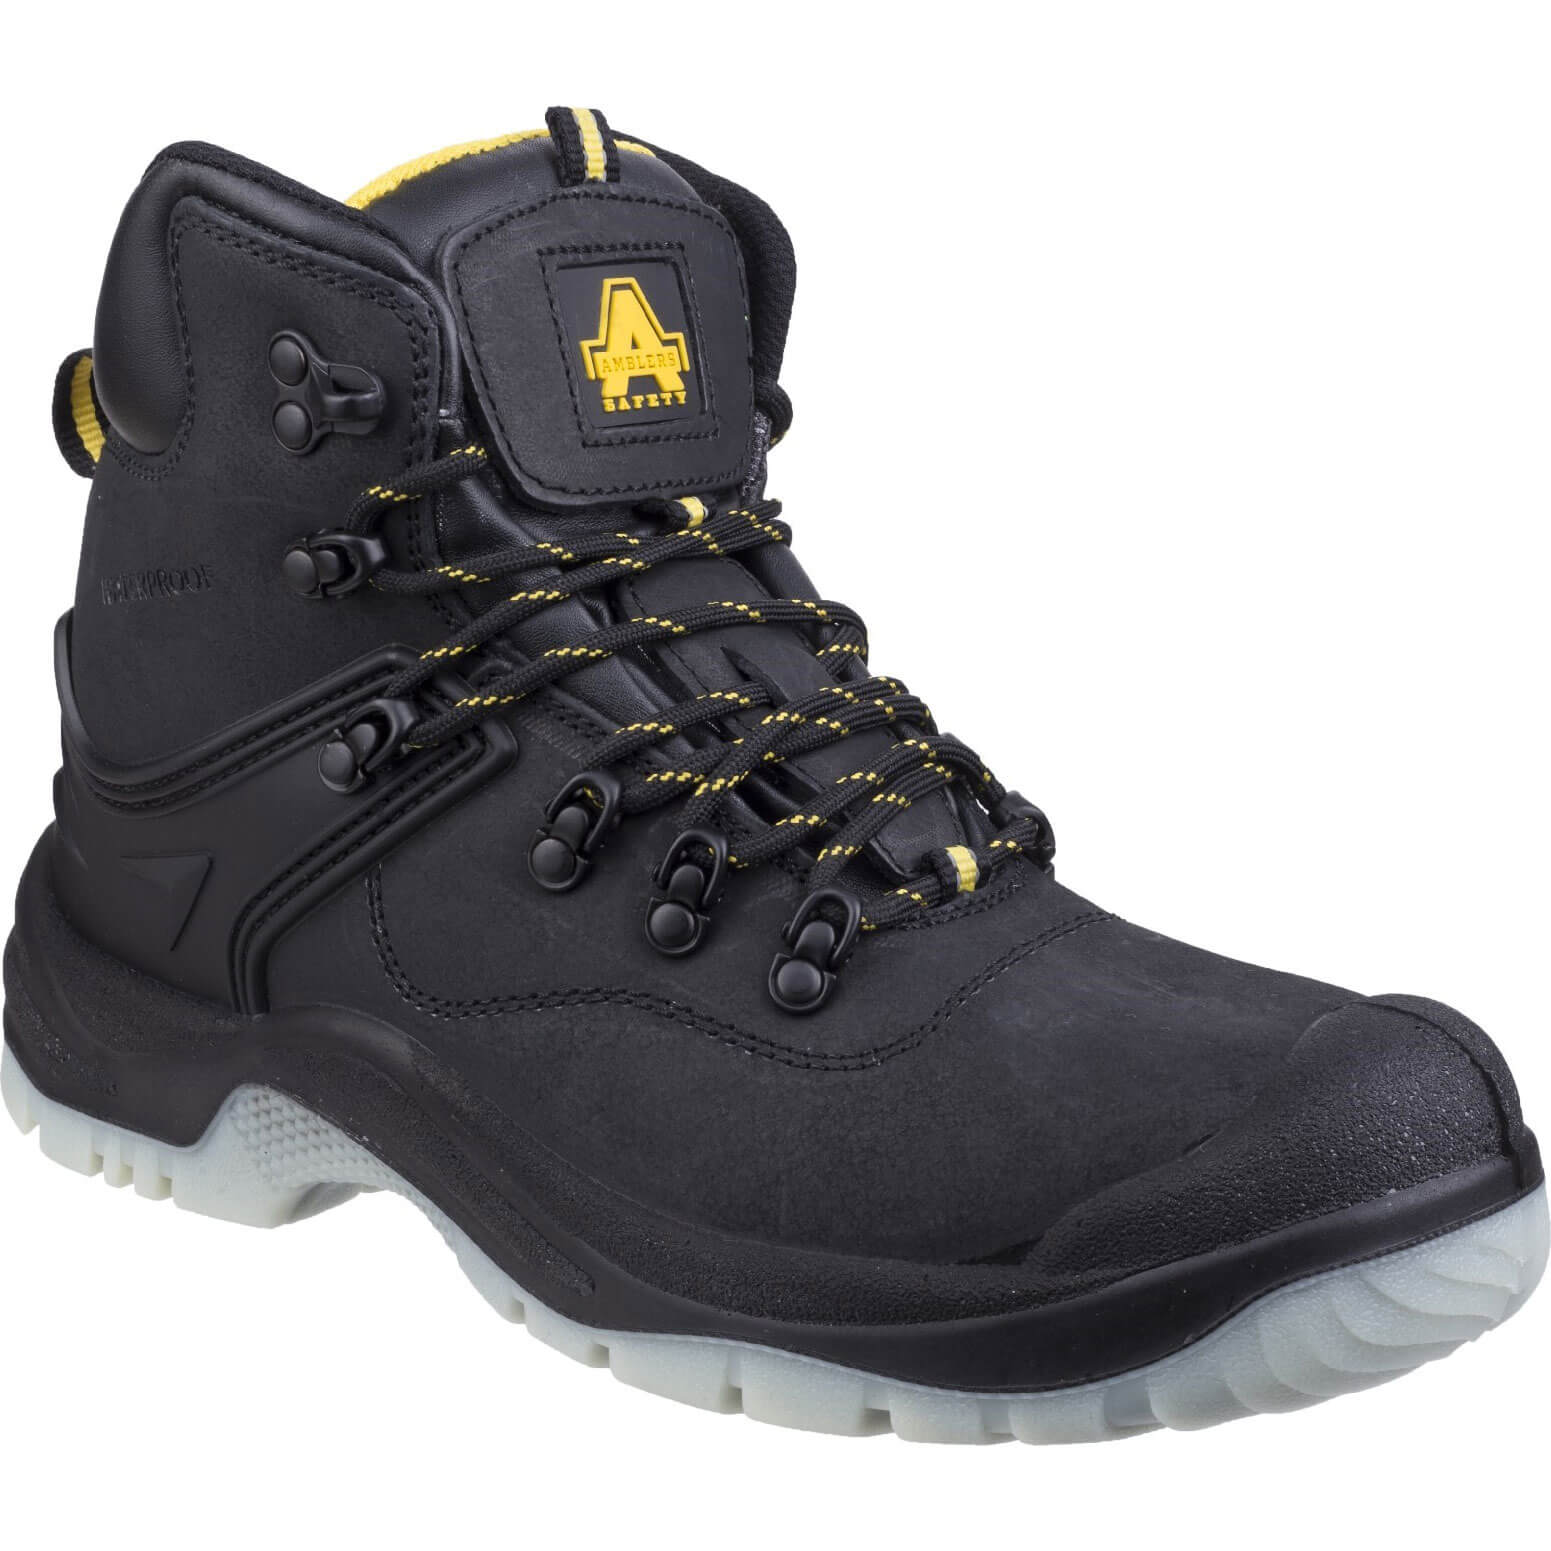 CHEAP Amblers Mens Safety FS198 Safety Boots Black Size 12 – Men's Footwear